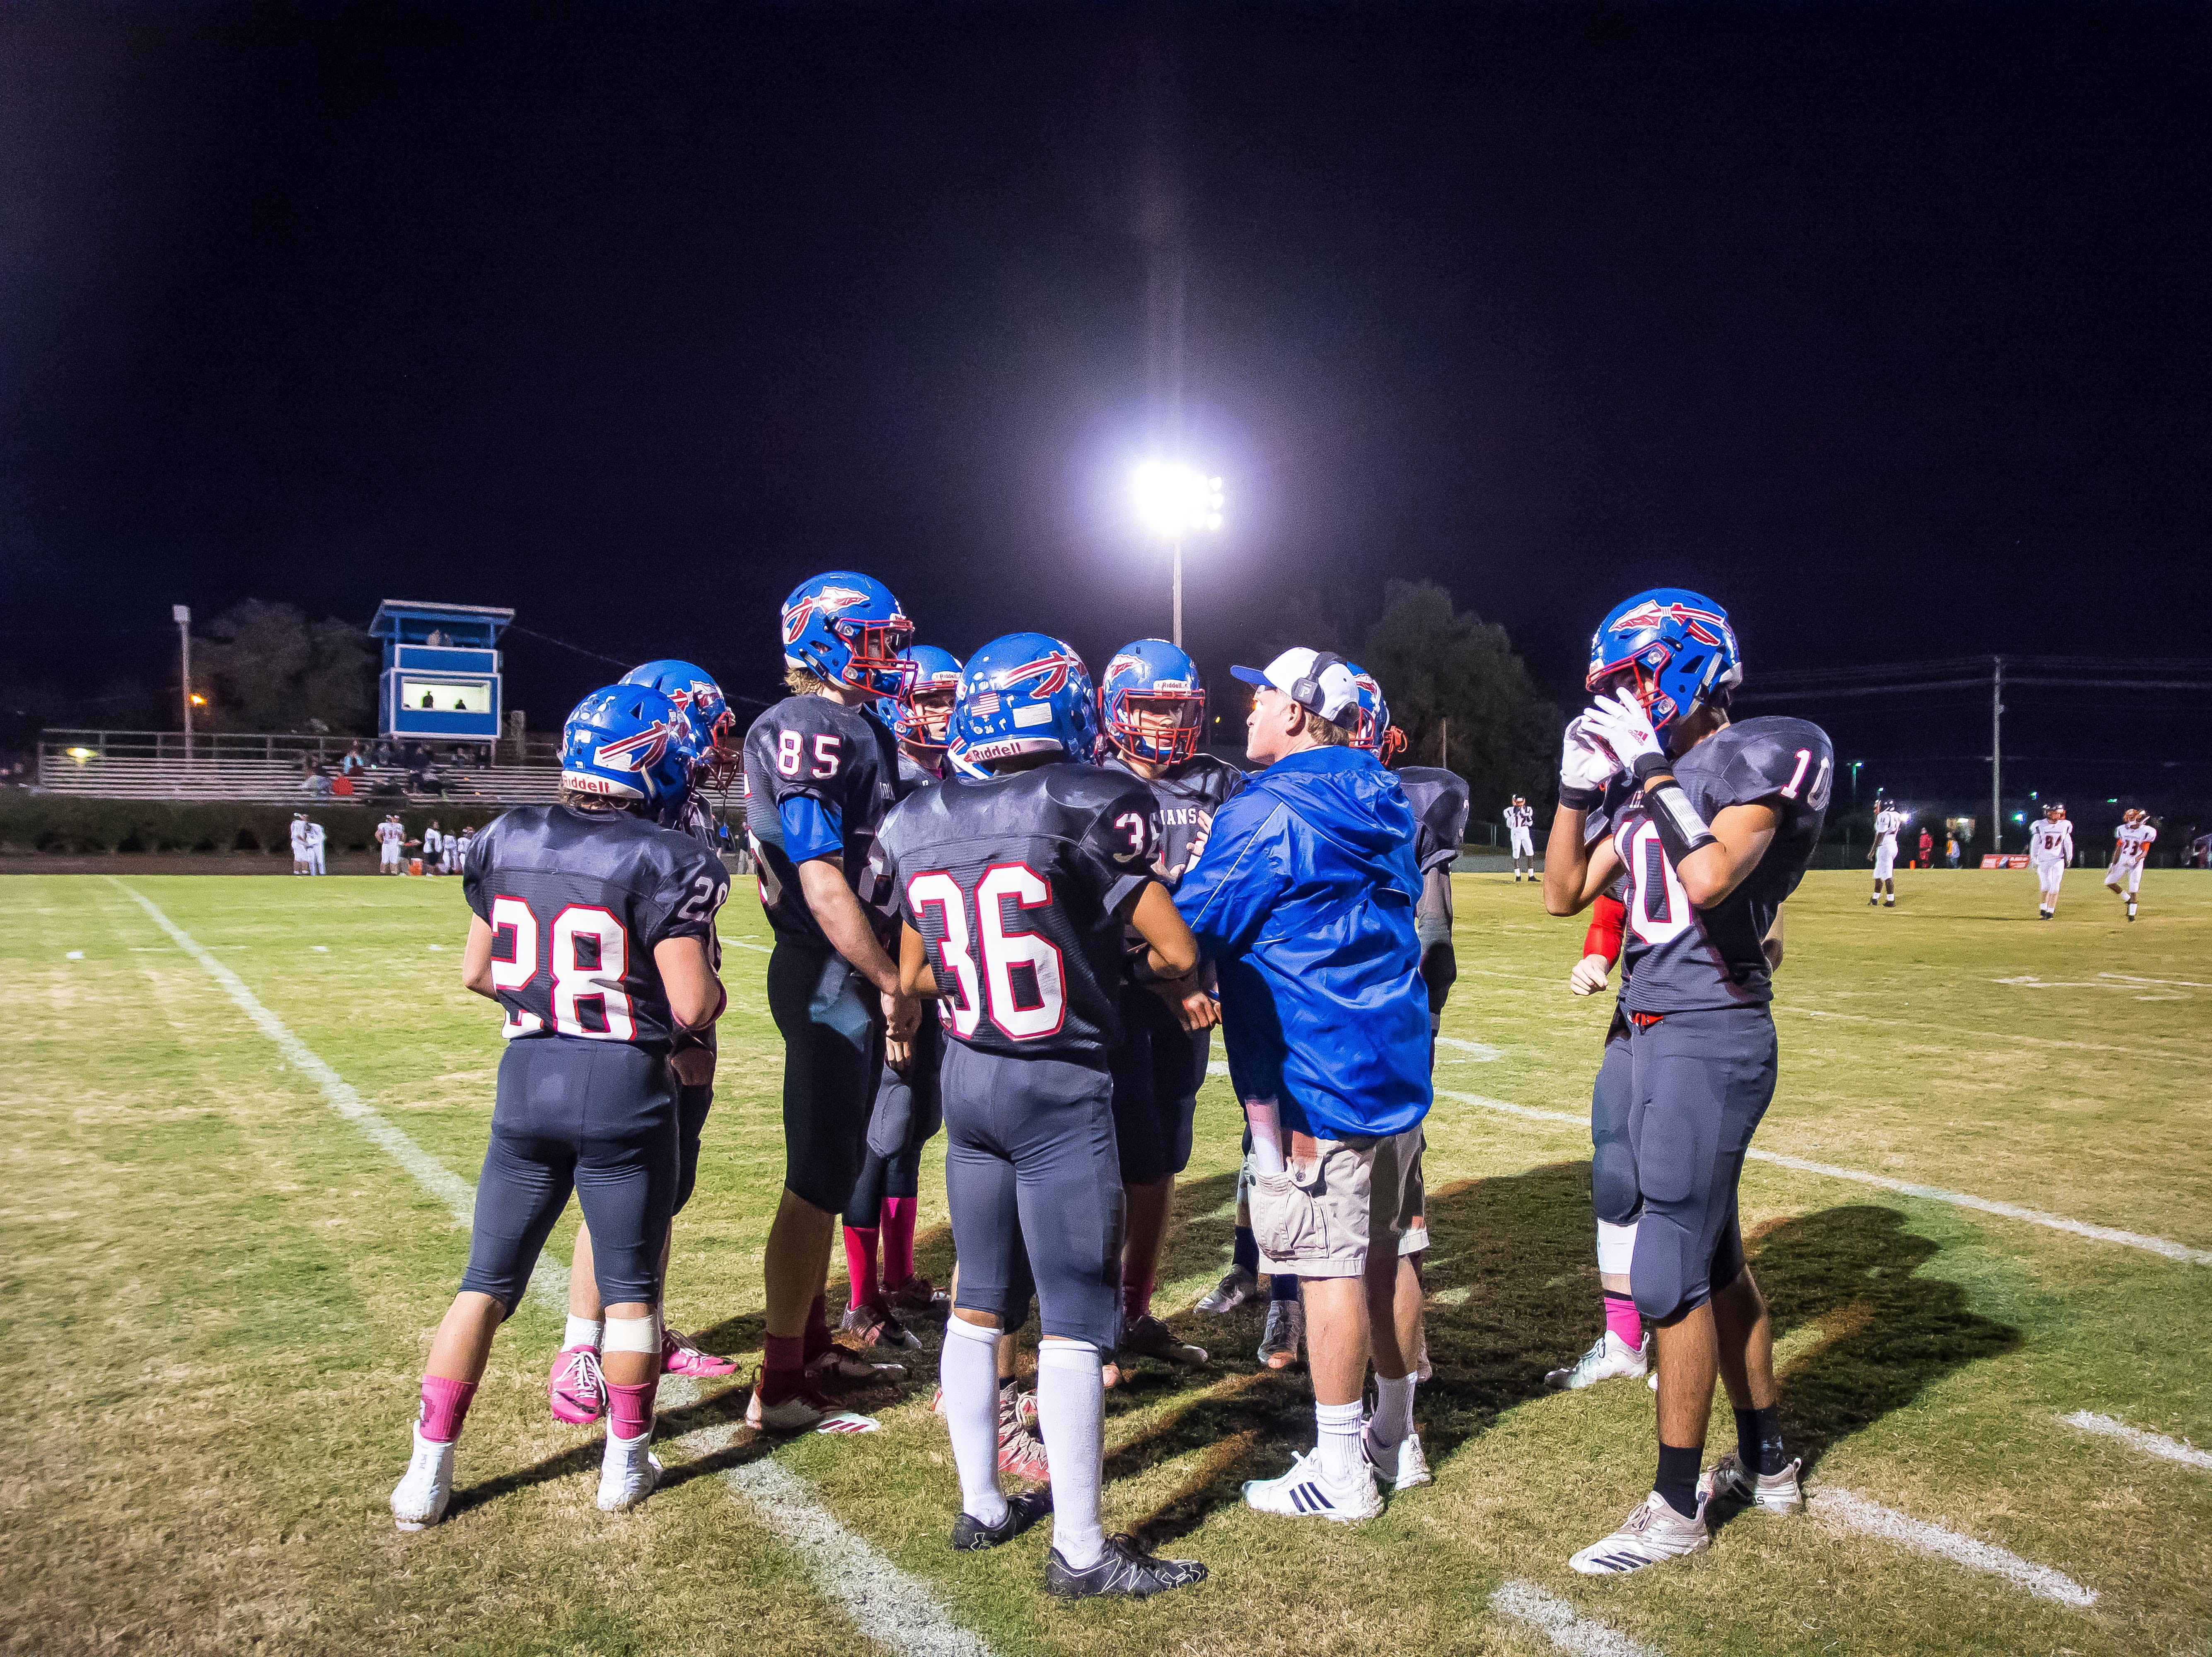 Harpeth coach Doug Loope giving his guys some last minute instructions.